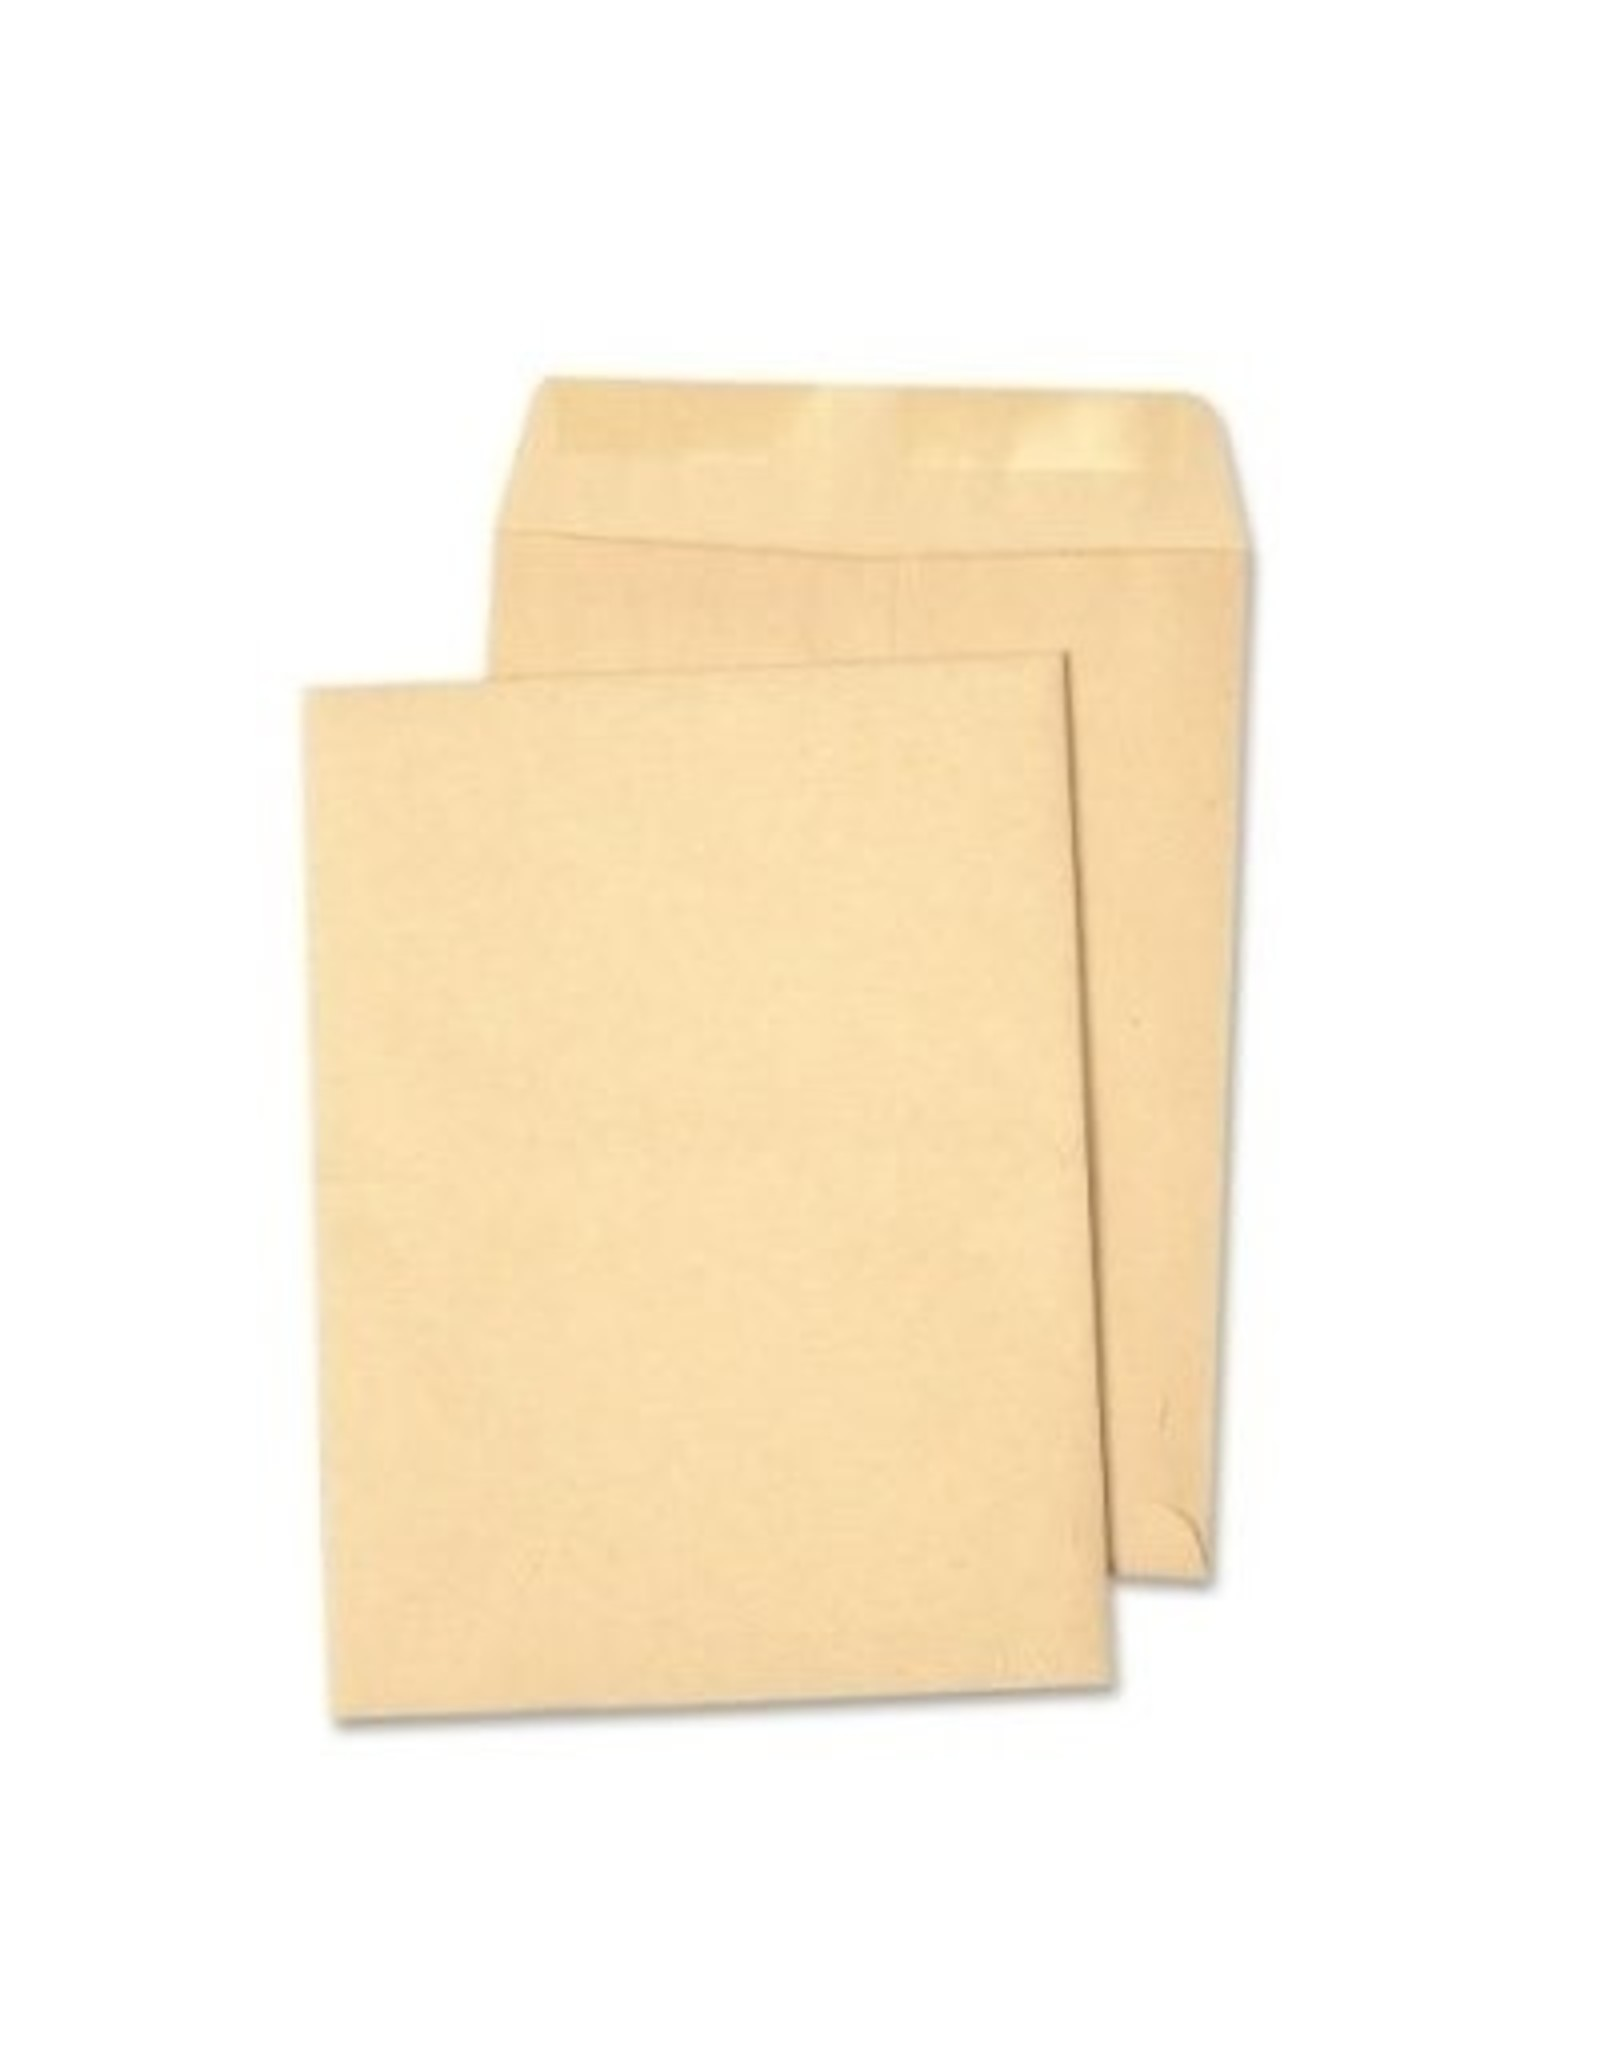 TOPS Products ENVELOPE-CATALOGUE 10X13 KRAFT, OP BRAND, 10/PACK